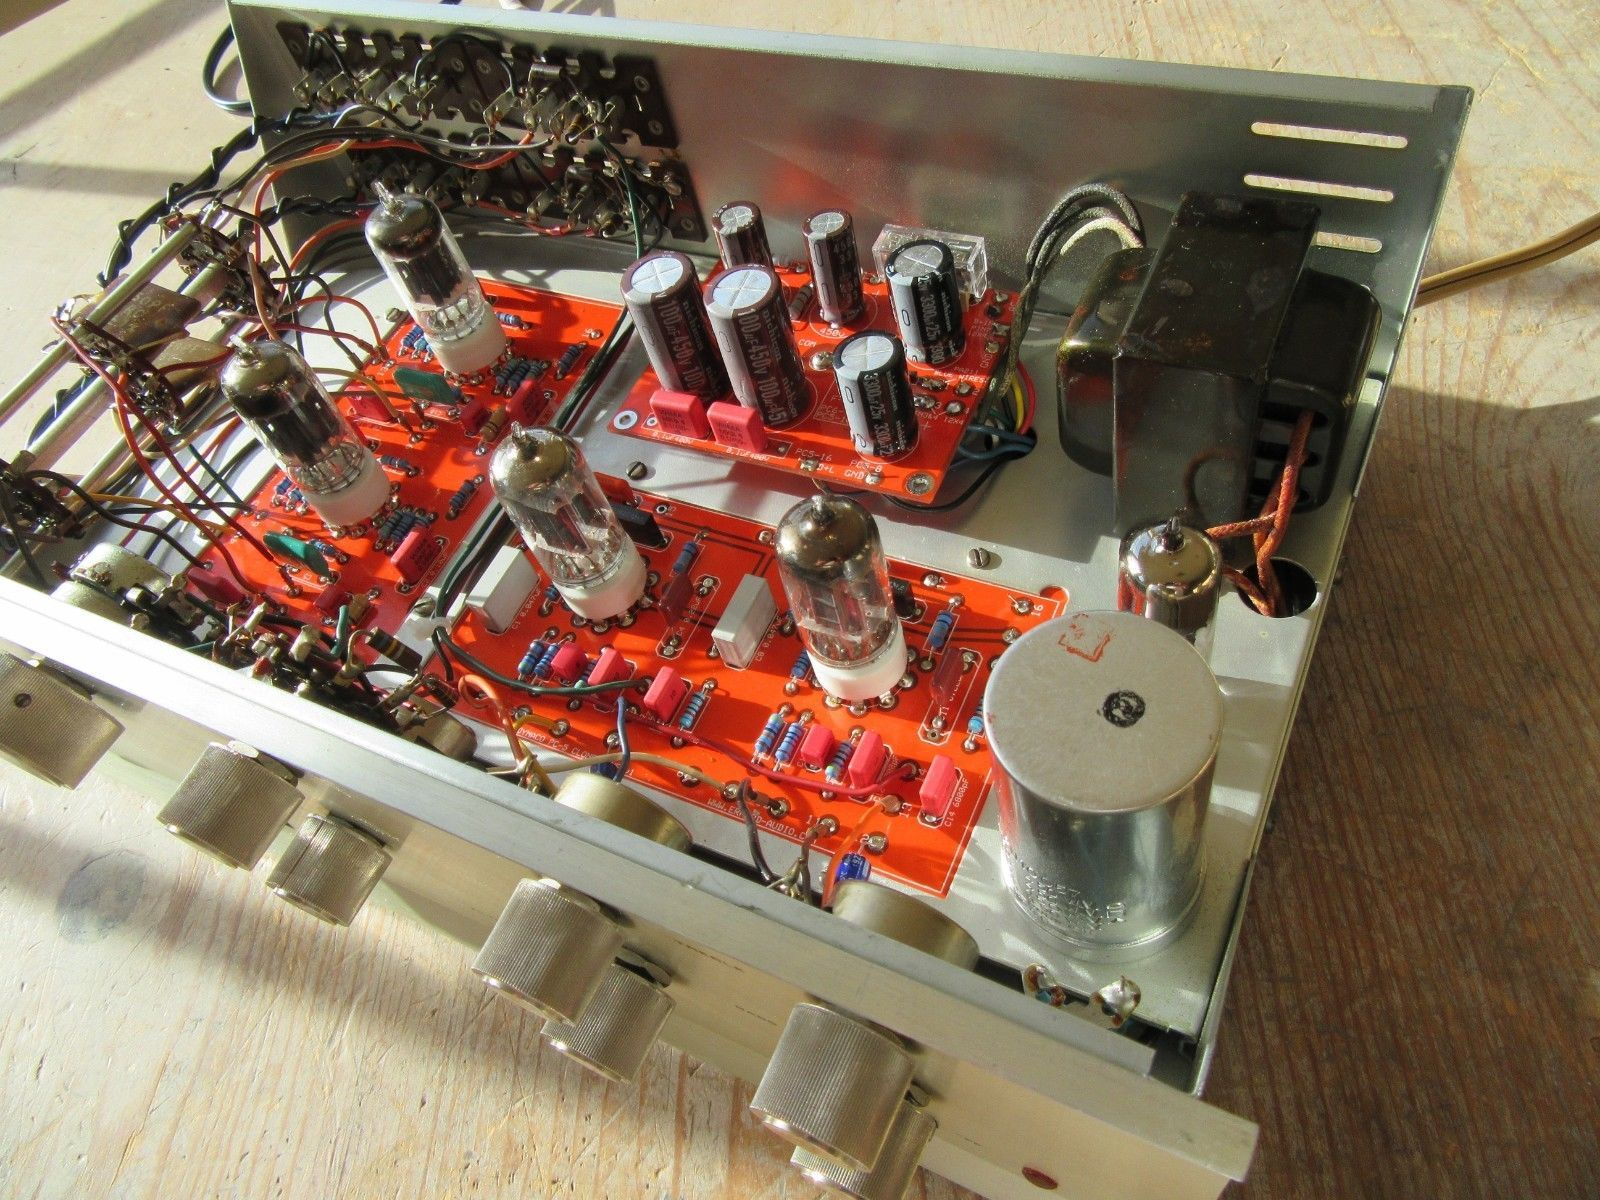 Restored Dynaco PAS 3 Tube Preamp, Erhard Boards, Power